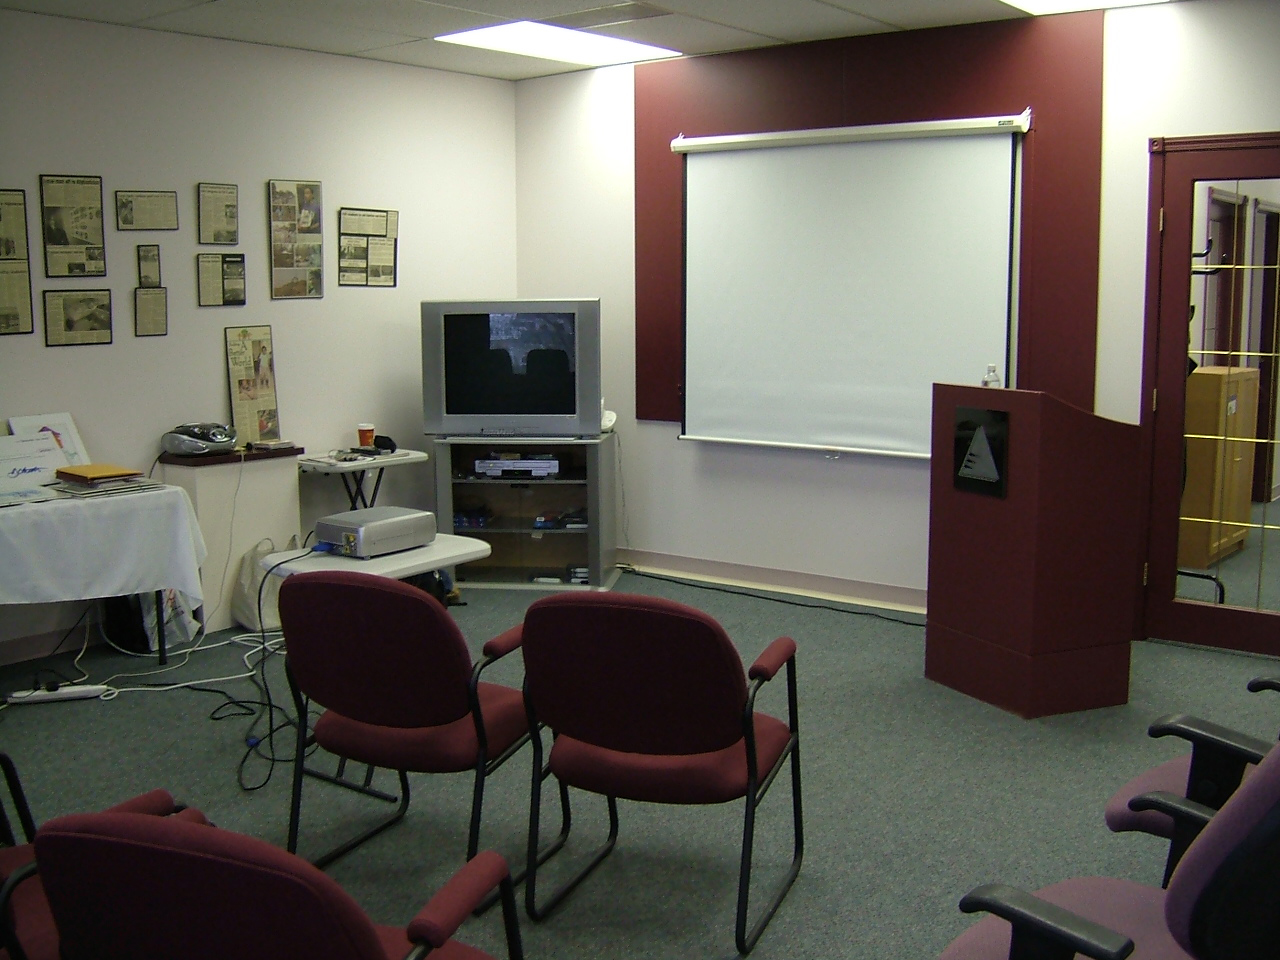 The front of the room